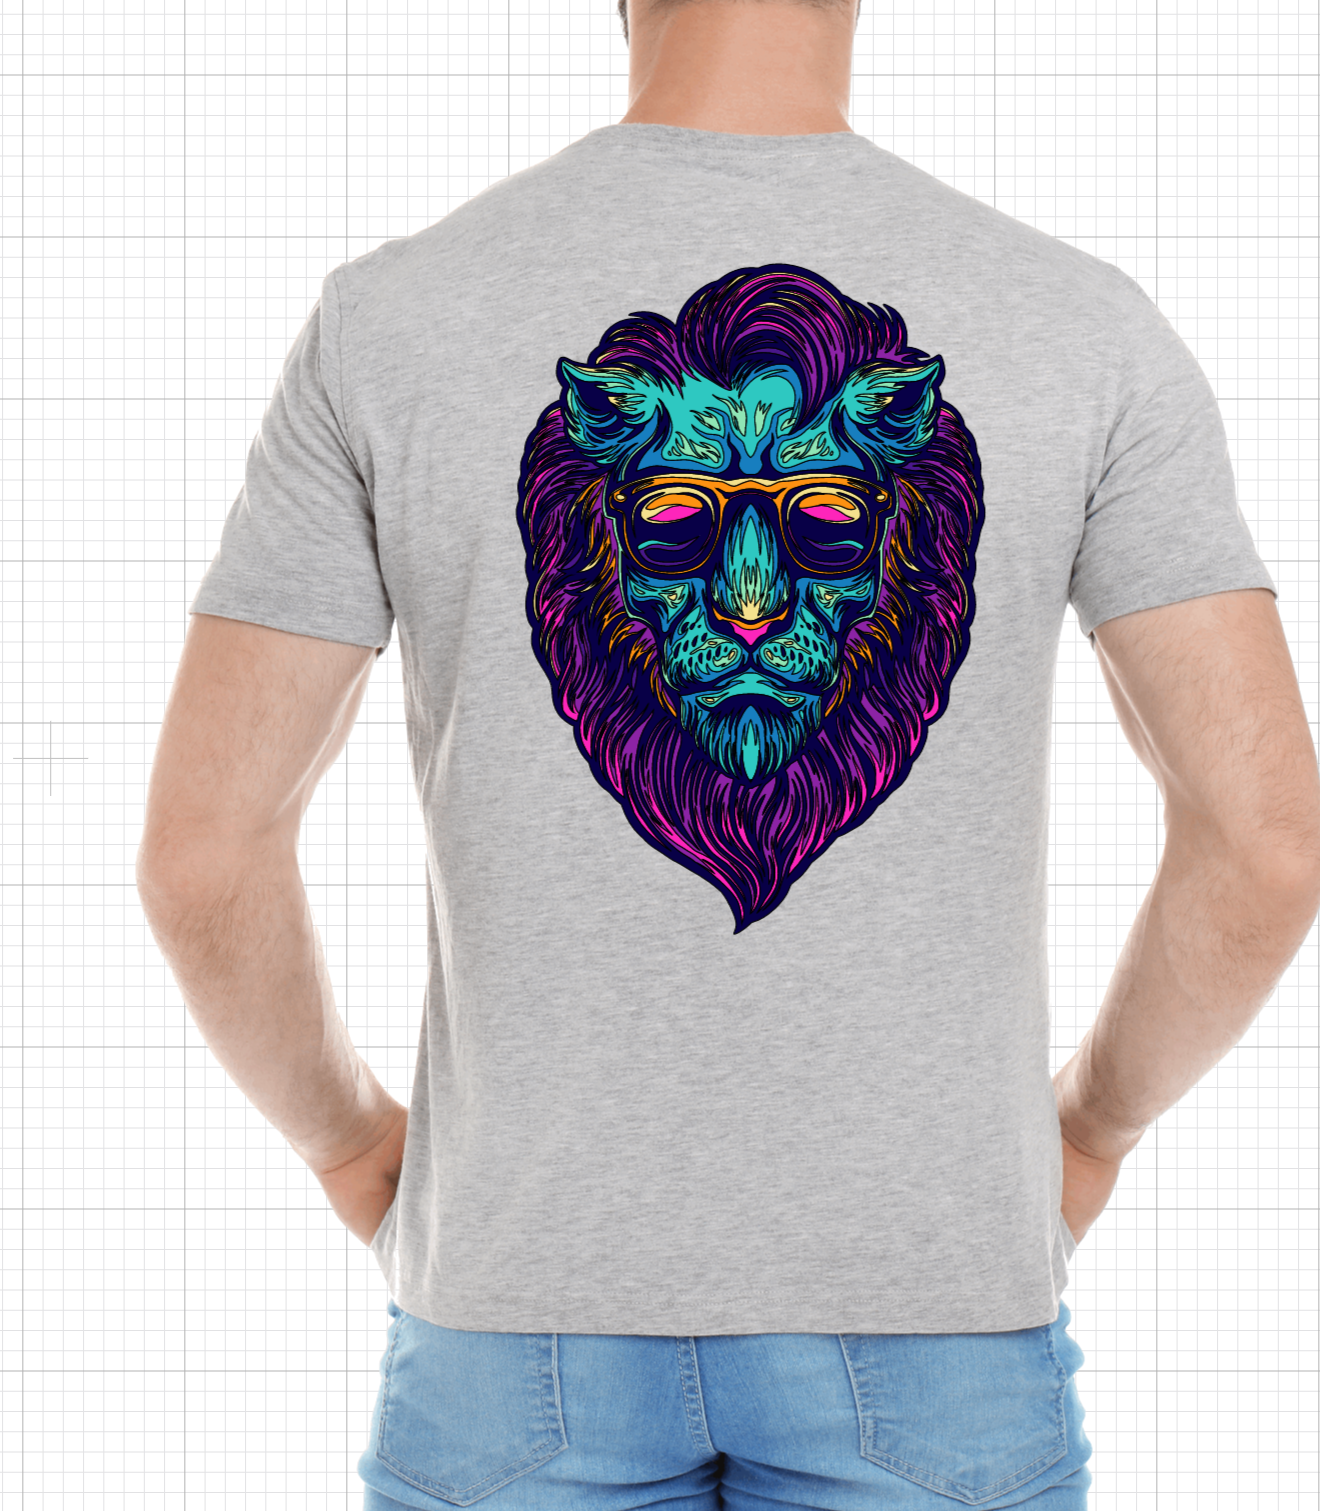 Retro Color Lion Short Sleeve Tshirt For Him